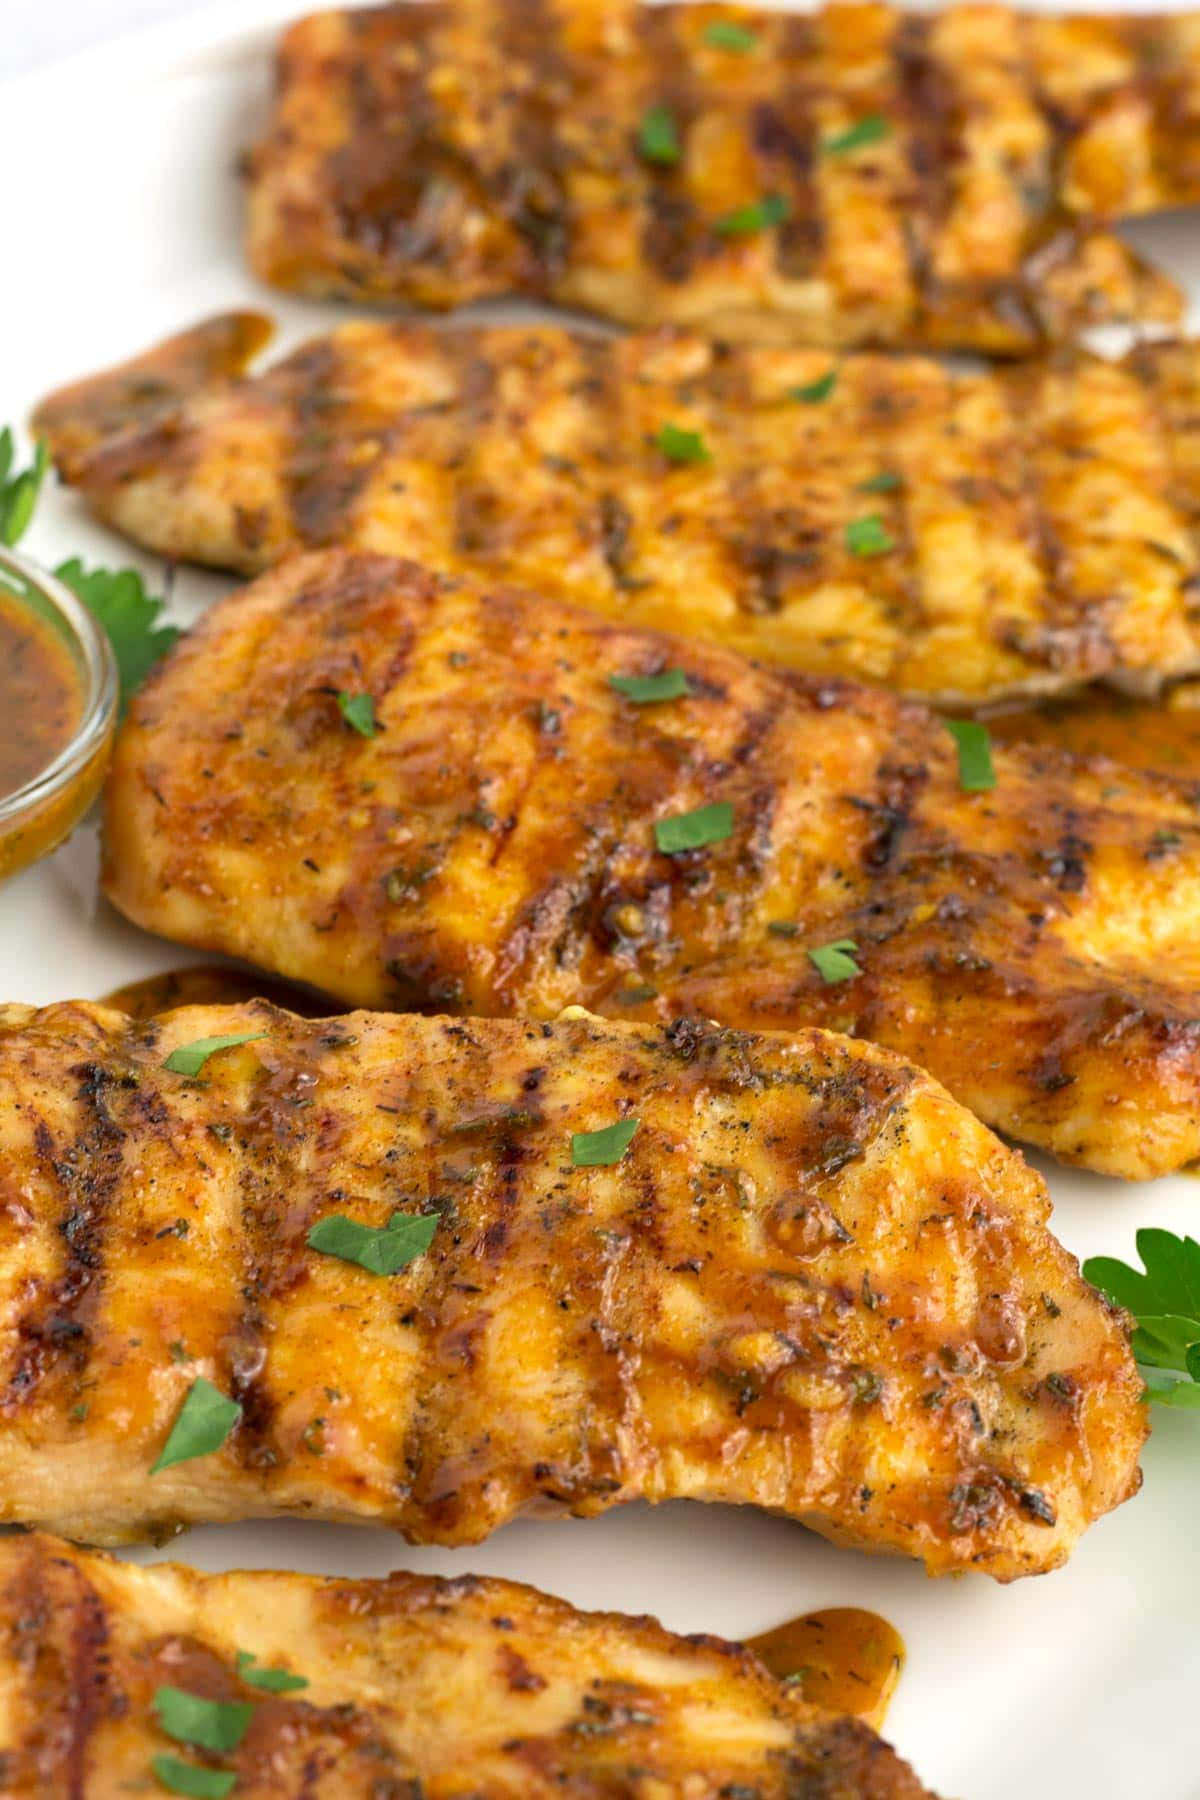 White tray with grilled honey mustard chicken breasts.